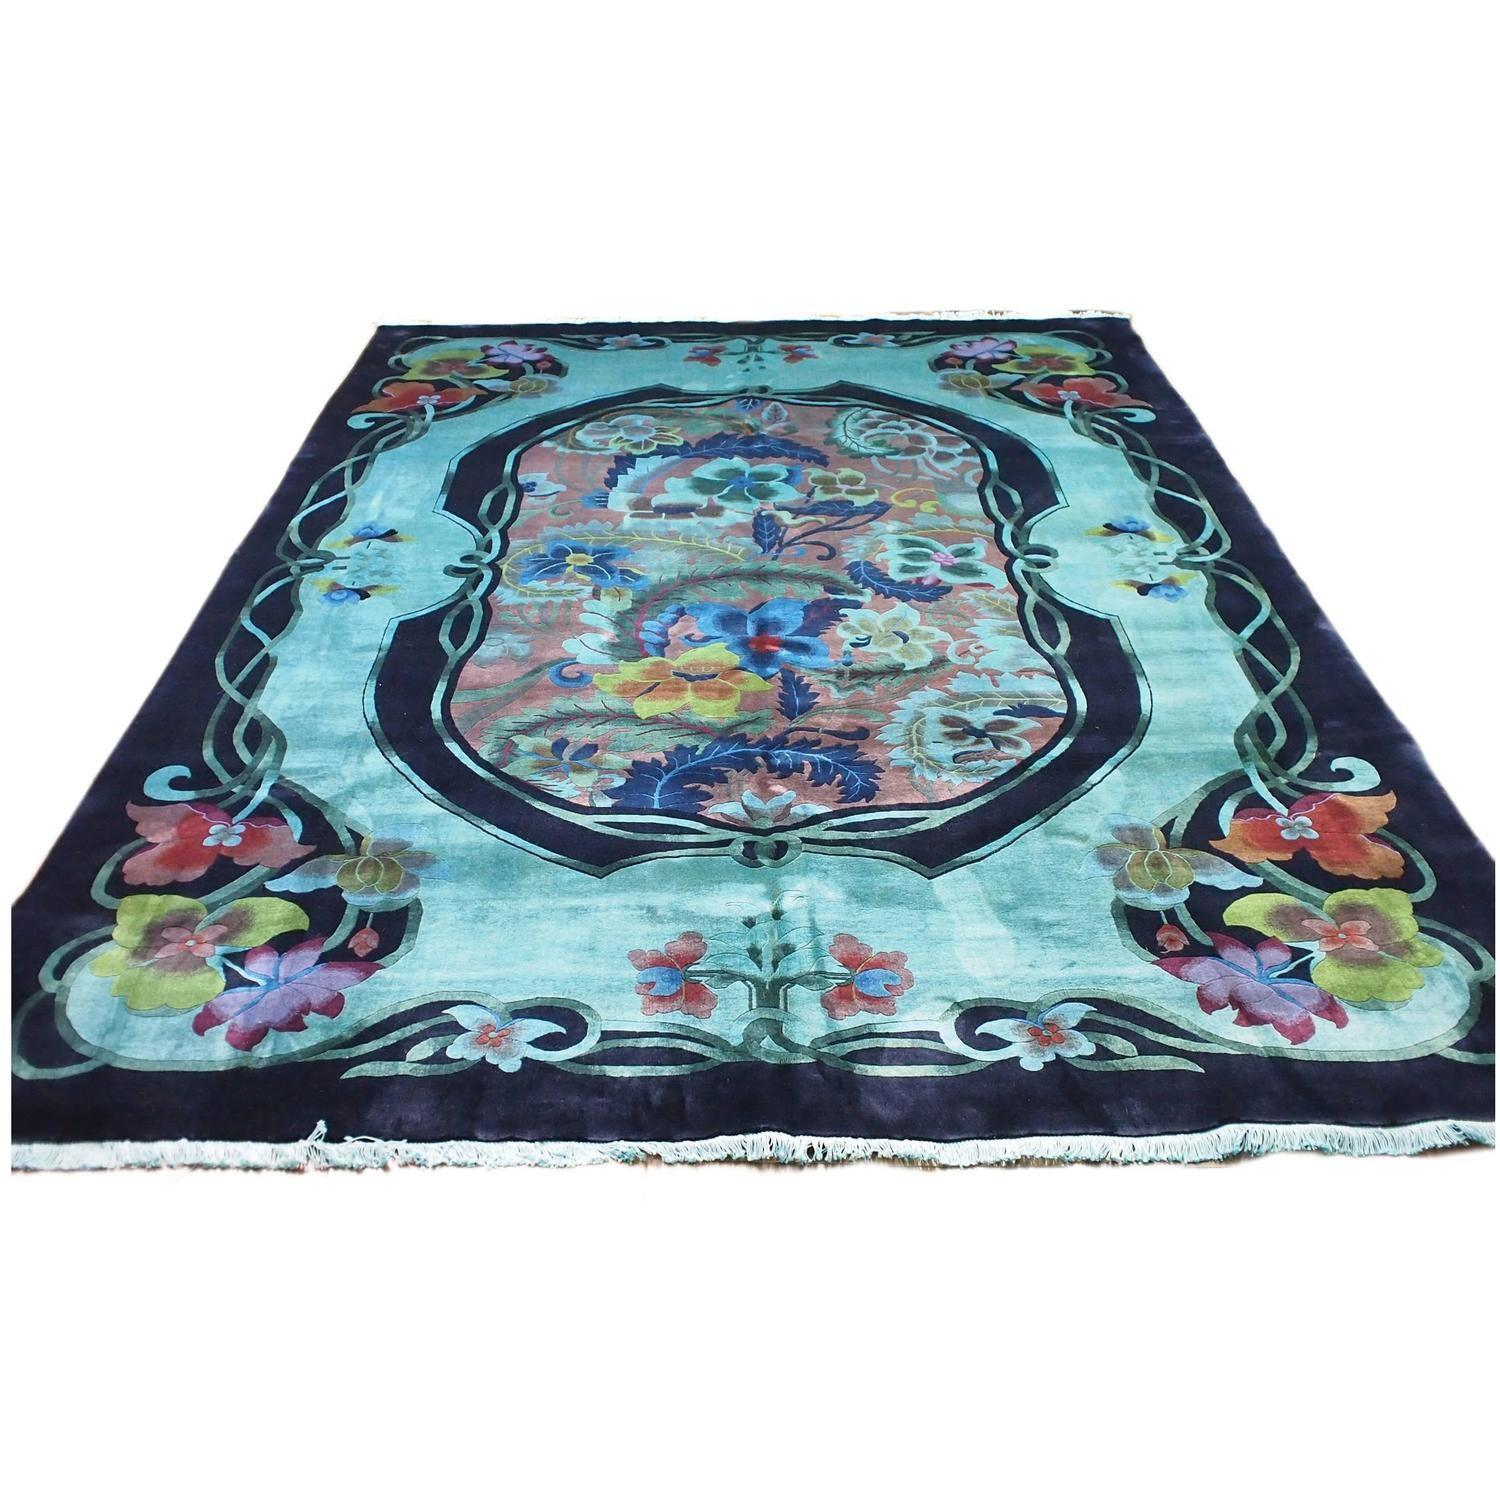 Antique Chinese Deco Teal Overdyed Rug Sale 1stdibs